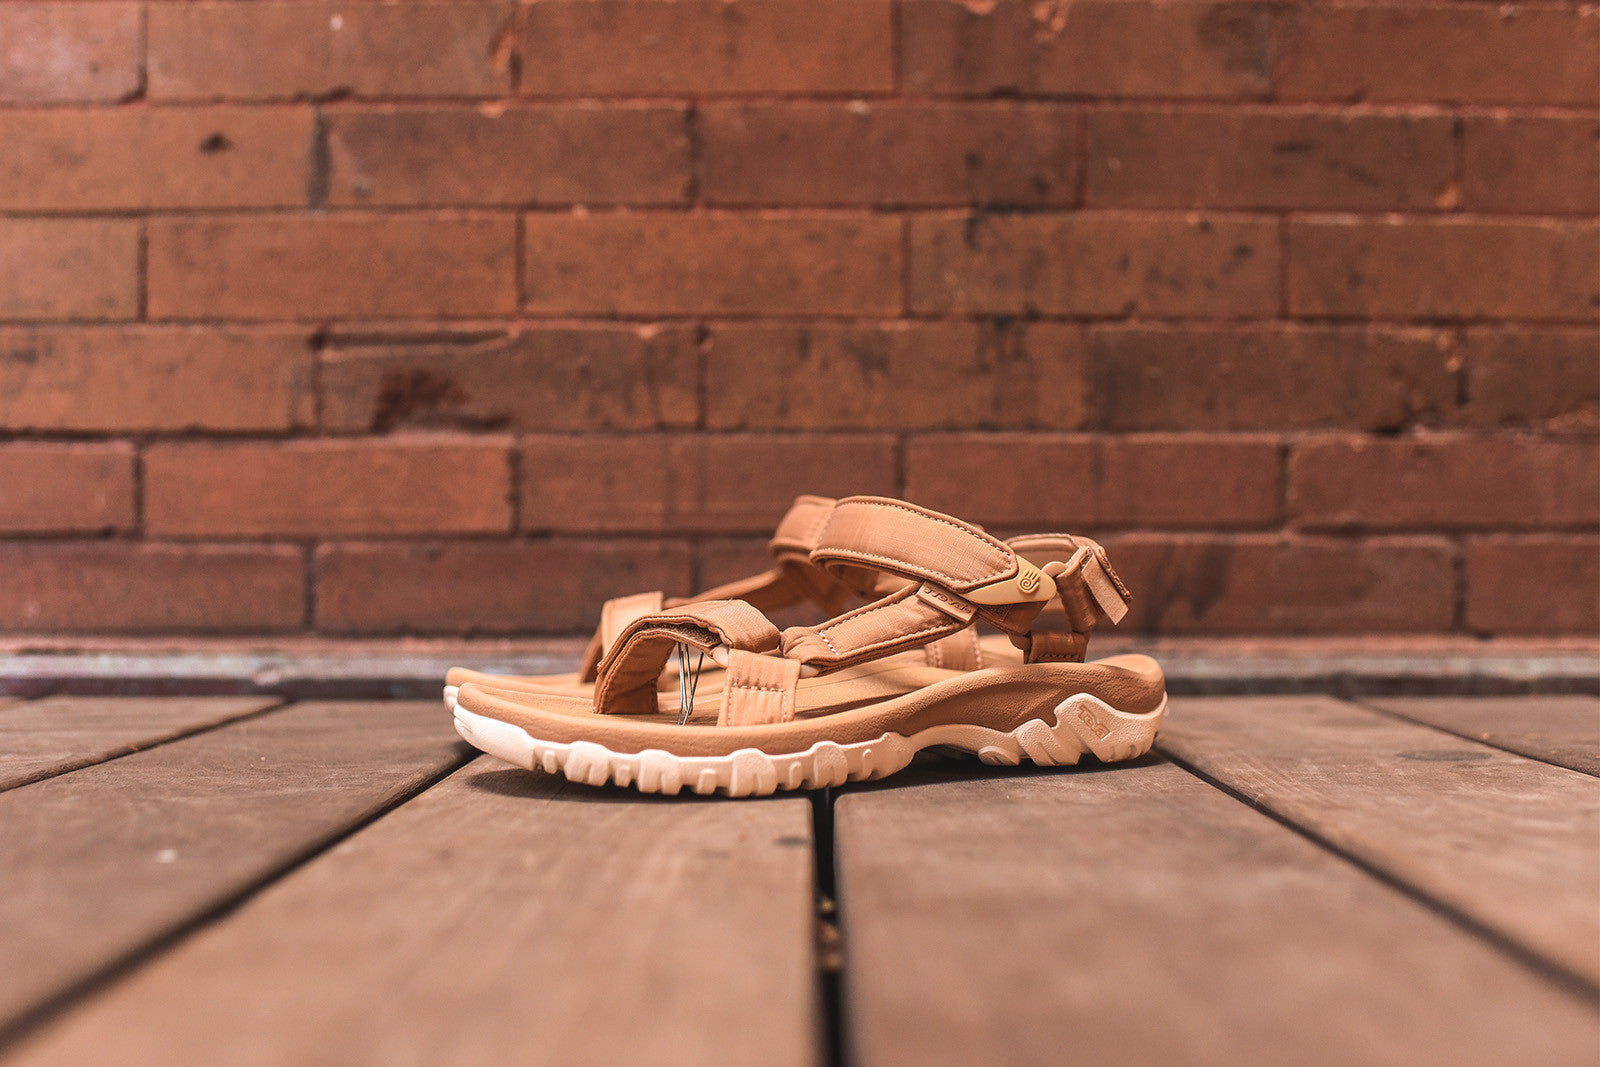 Teva x Beauty & Youth Hurricane XLT Sandal - Tan